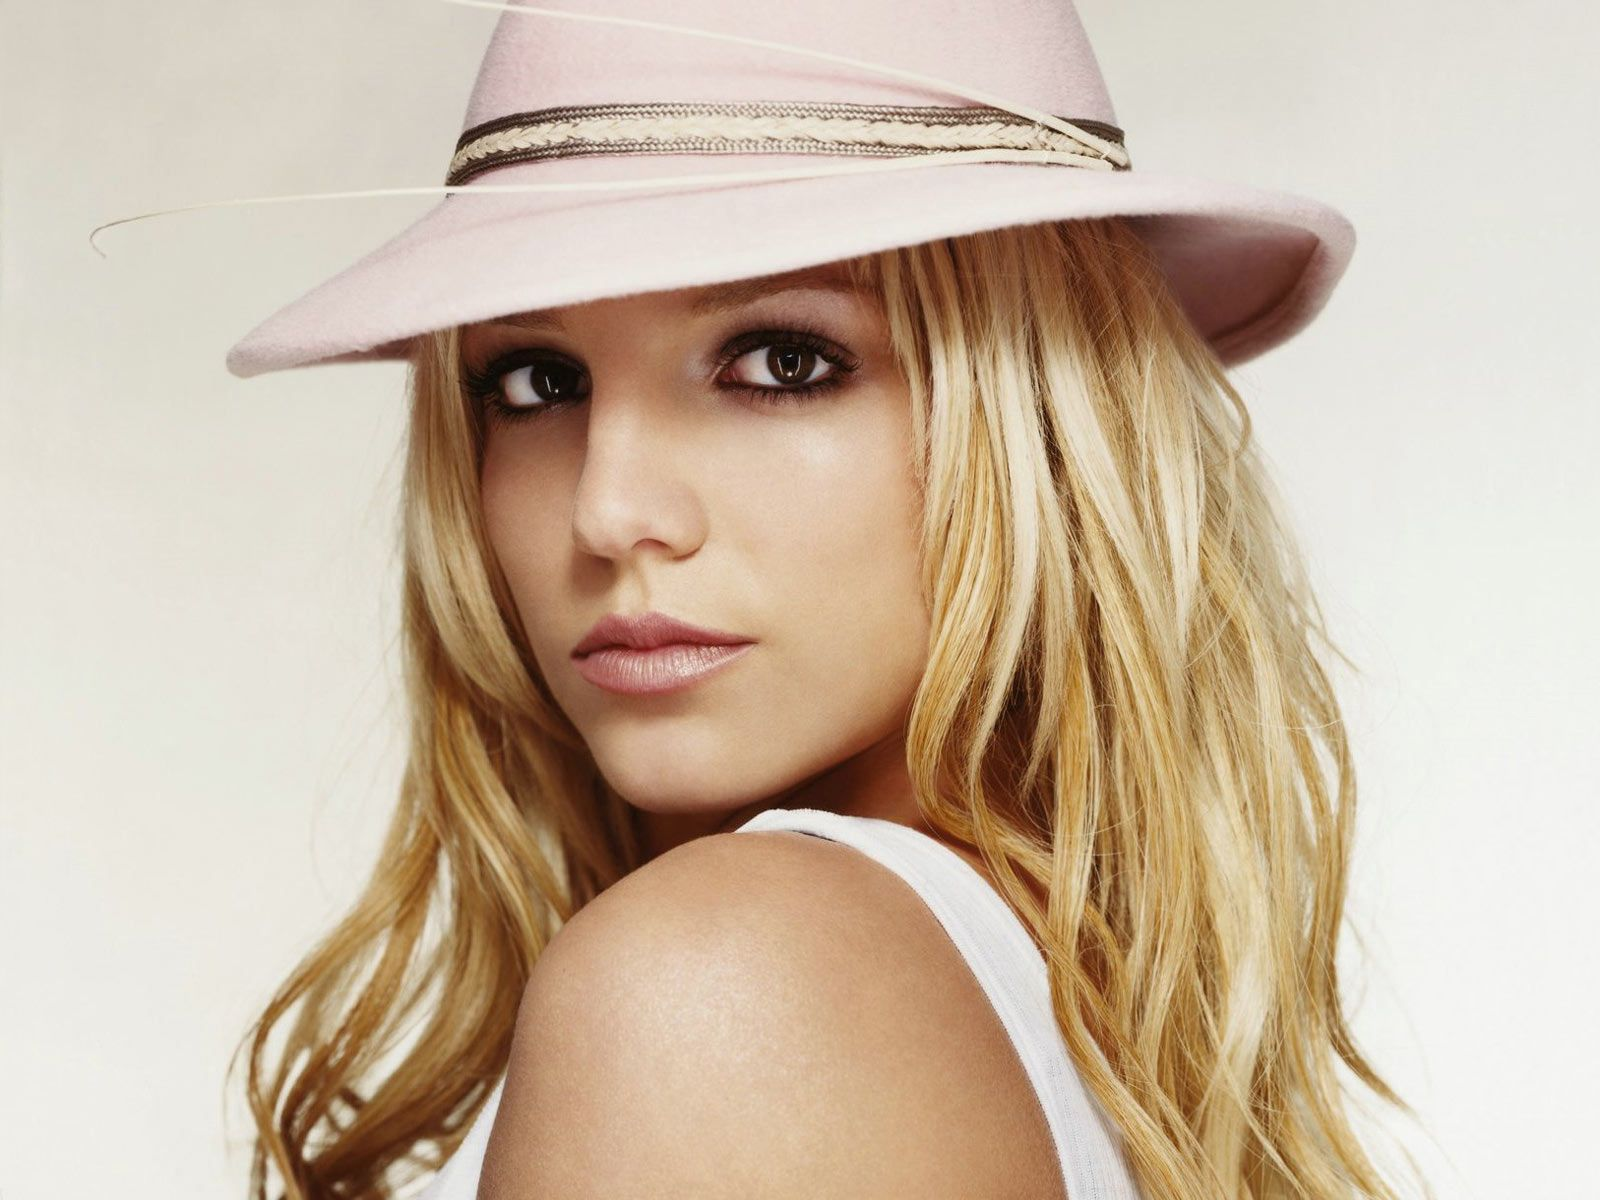 Britney Spears: Britney Spears Wallpaper Hot Britney